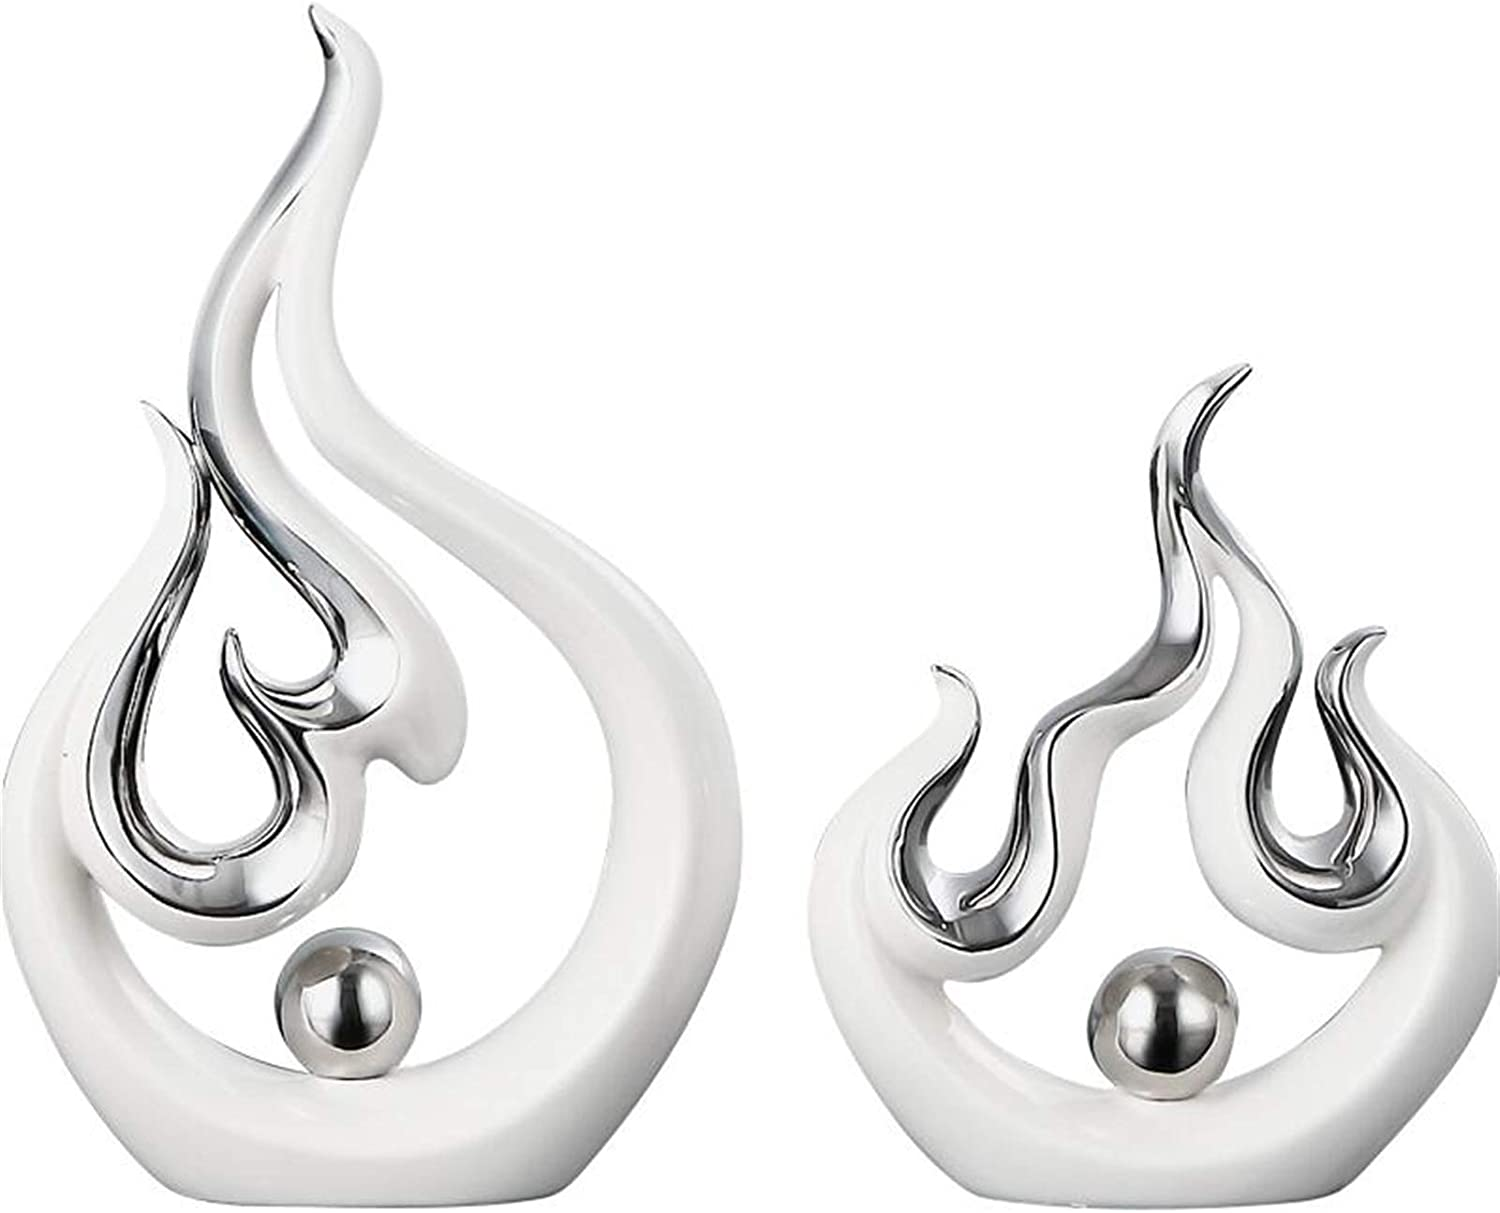 ZYLE Modern Creative White Fire Max 82% OFF Home Discount is also underway L Ceramic Accessories Shape